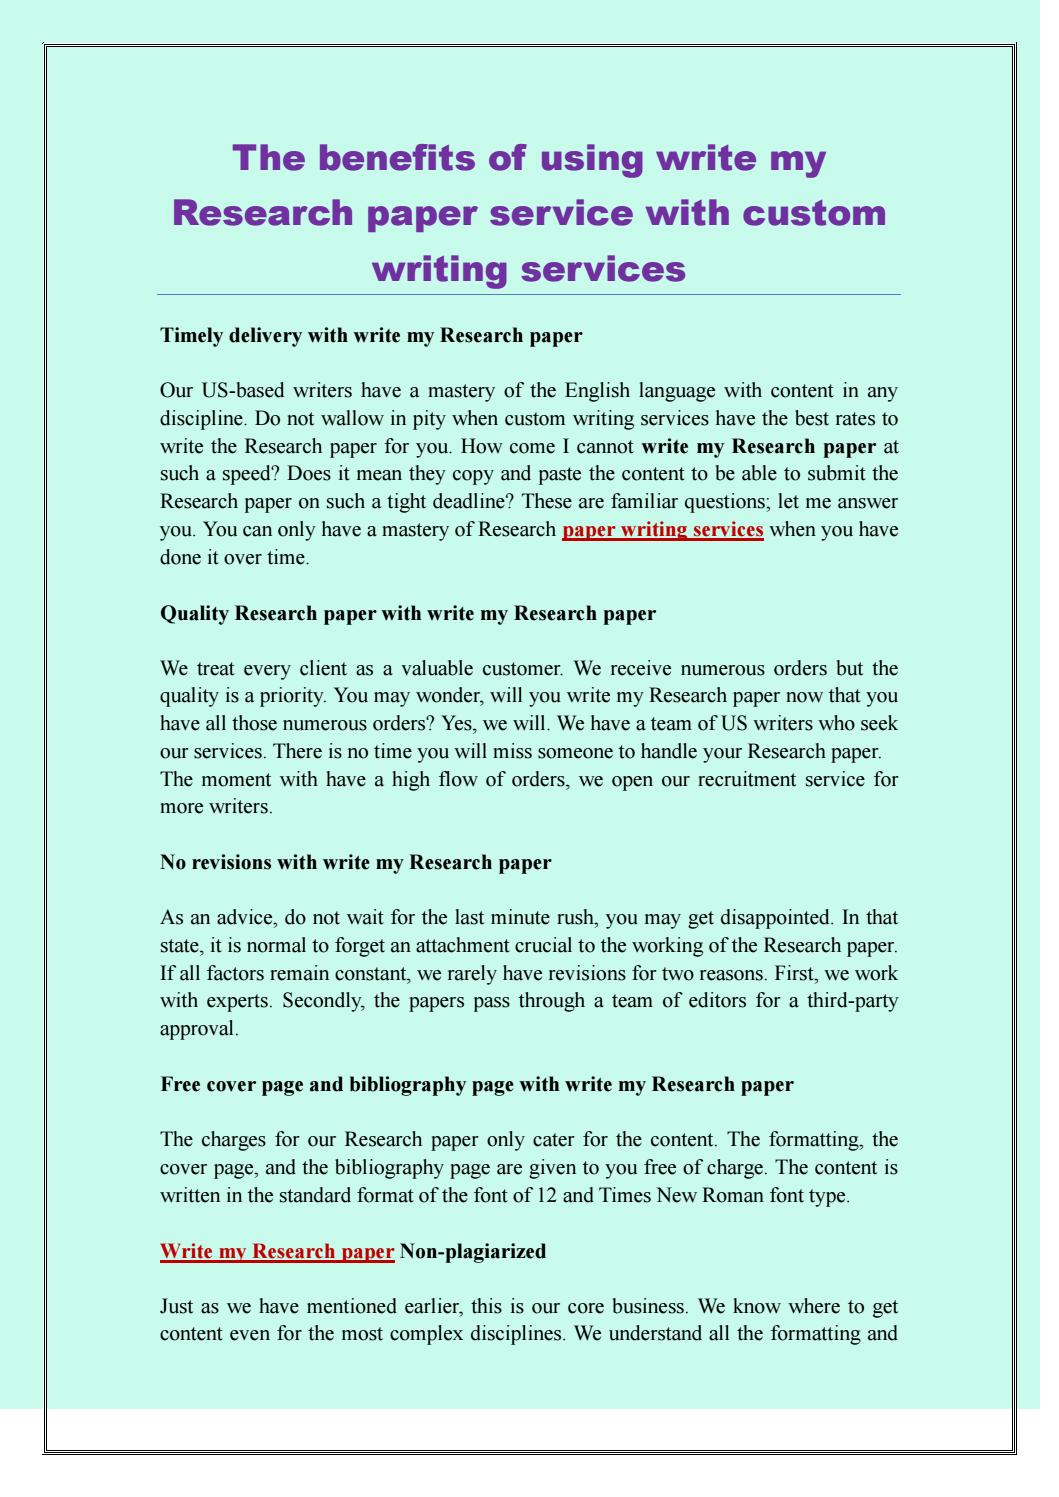 the benefits of using write my research paper service with custom  the benefits of using write my research paper service with custom writing  services by writink services  issuu